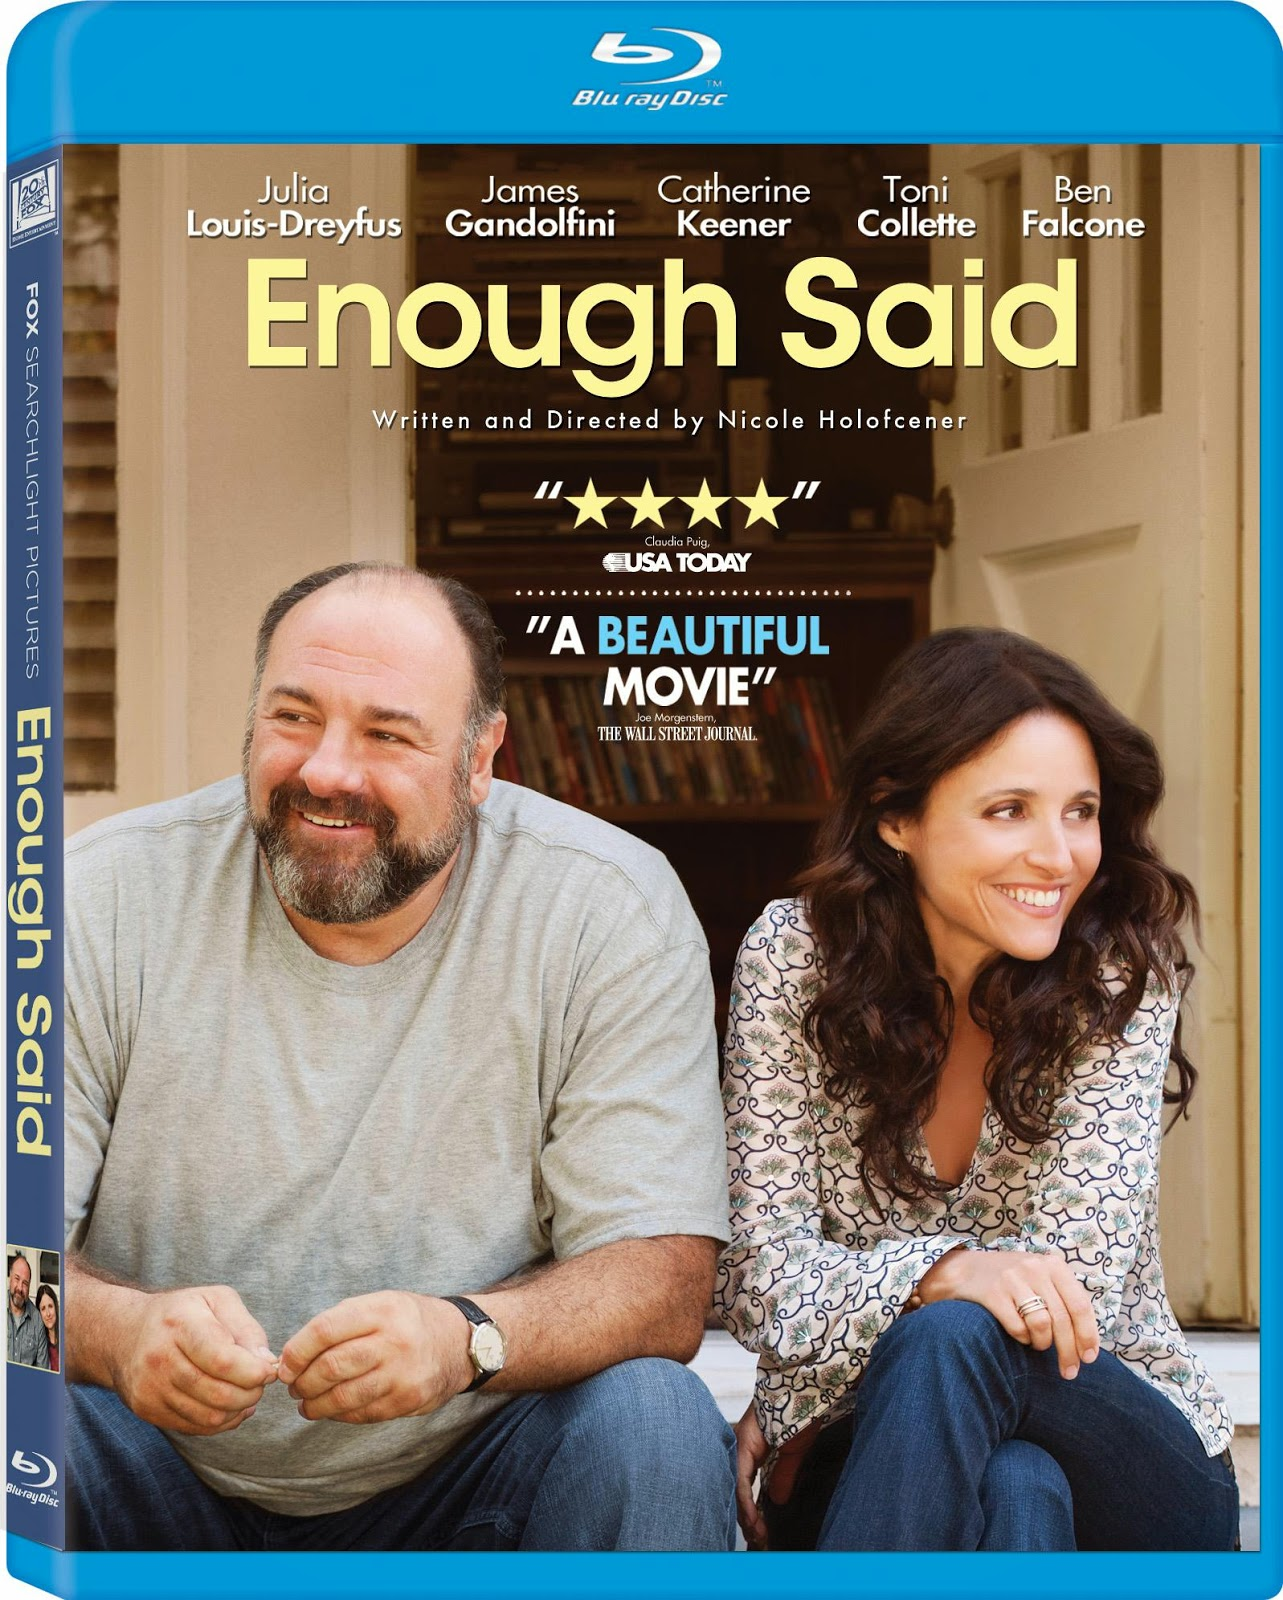 http://www.amazon.com/Enough-Said-Blu-ray-Gandolfini/dp/B00FZ4KT84/